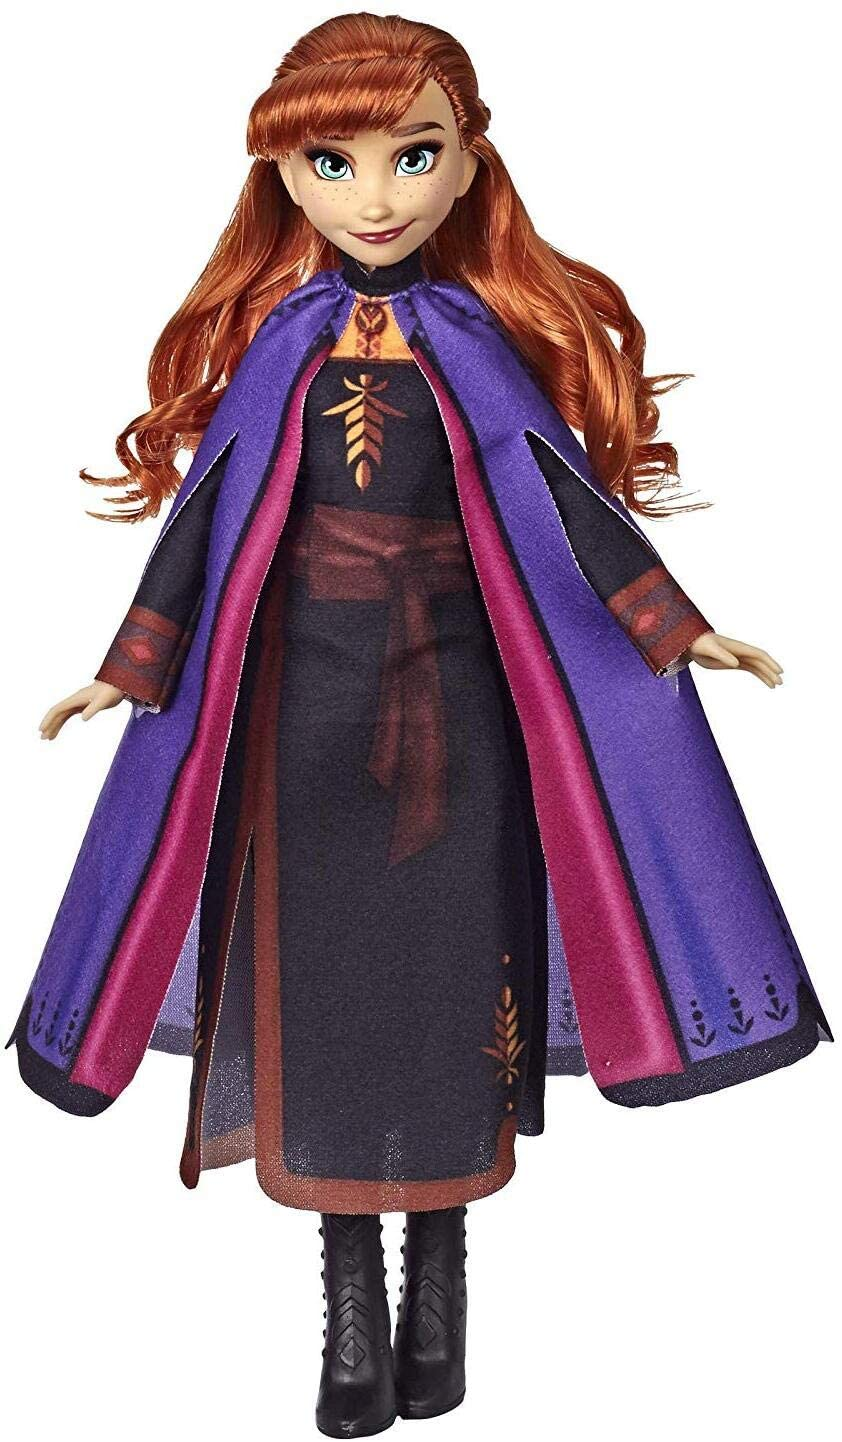 Disney Frozen Anna Fashion Doll With Long Red Hair and Outfit Inspired by Frozen 2